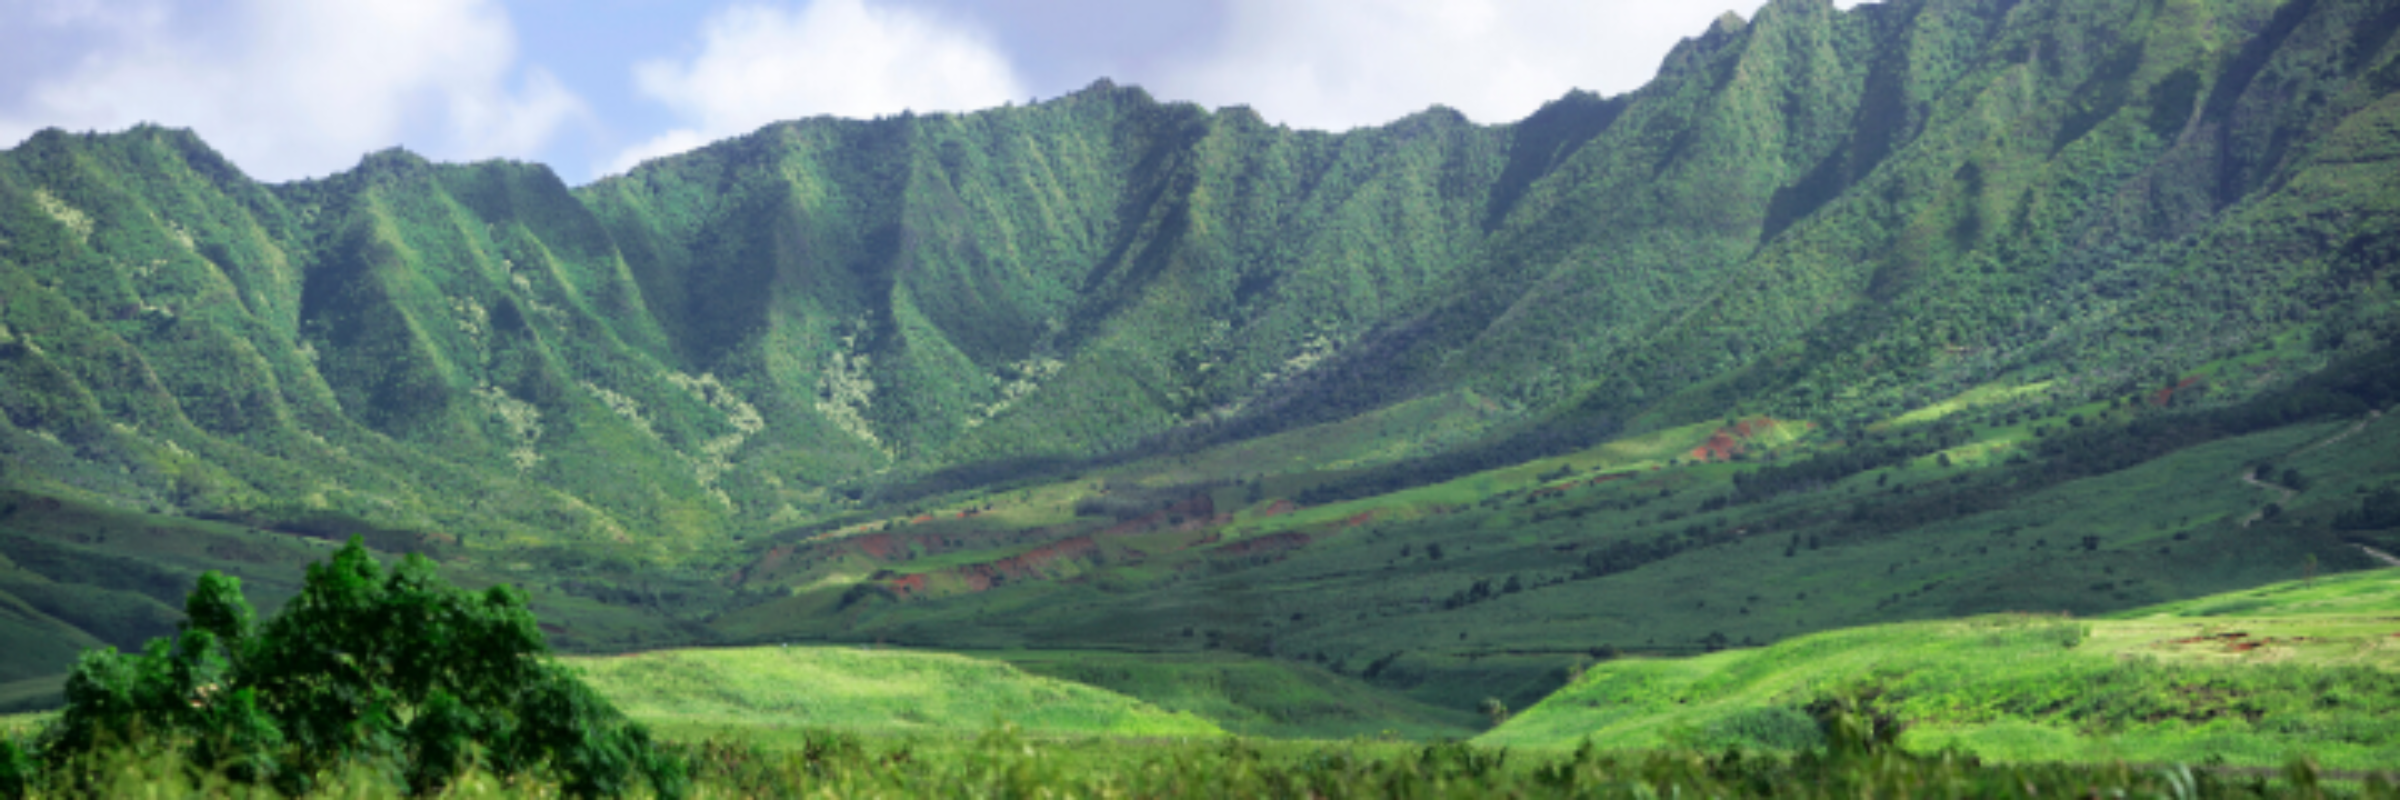 Waianae_Valley